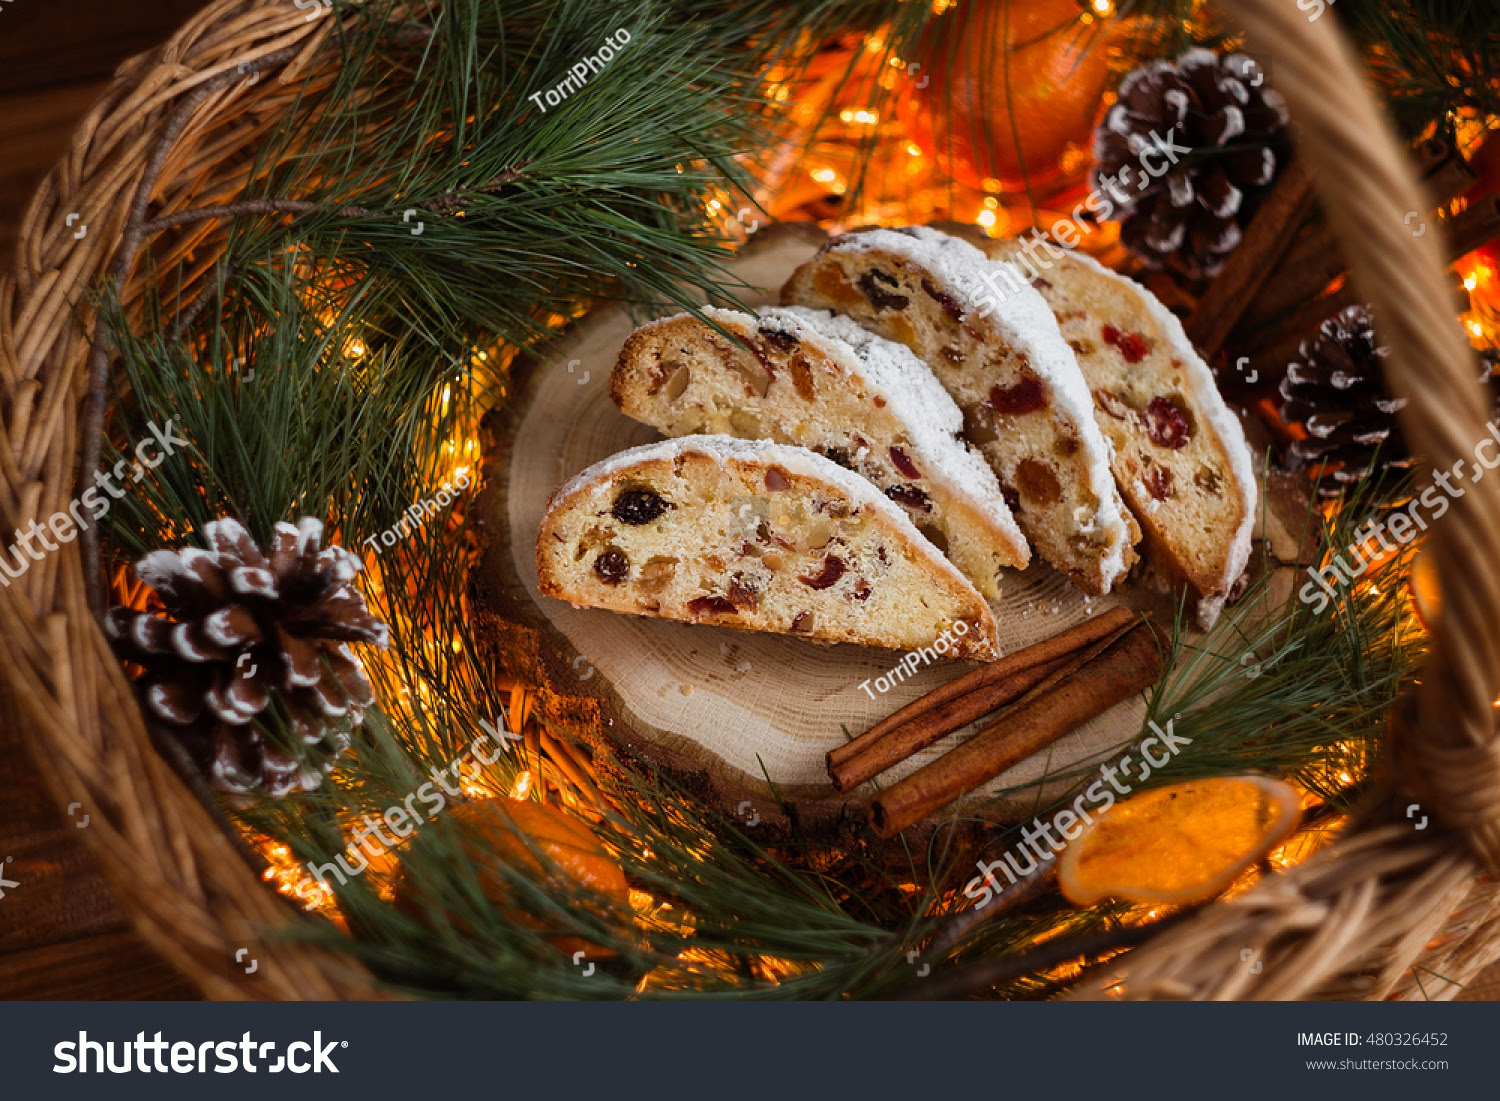 http://www.shutterstock.com/pic-480326452/stock-photo-slices-of-stollen-on-festive-rustic-wooden-background-with-cchristmas-light-bokeh-shallow-focus.html